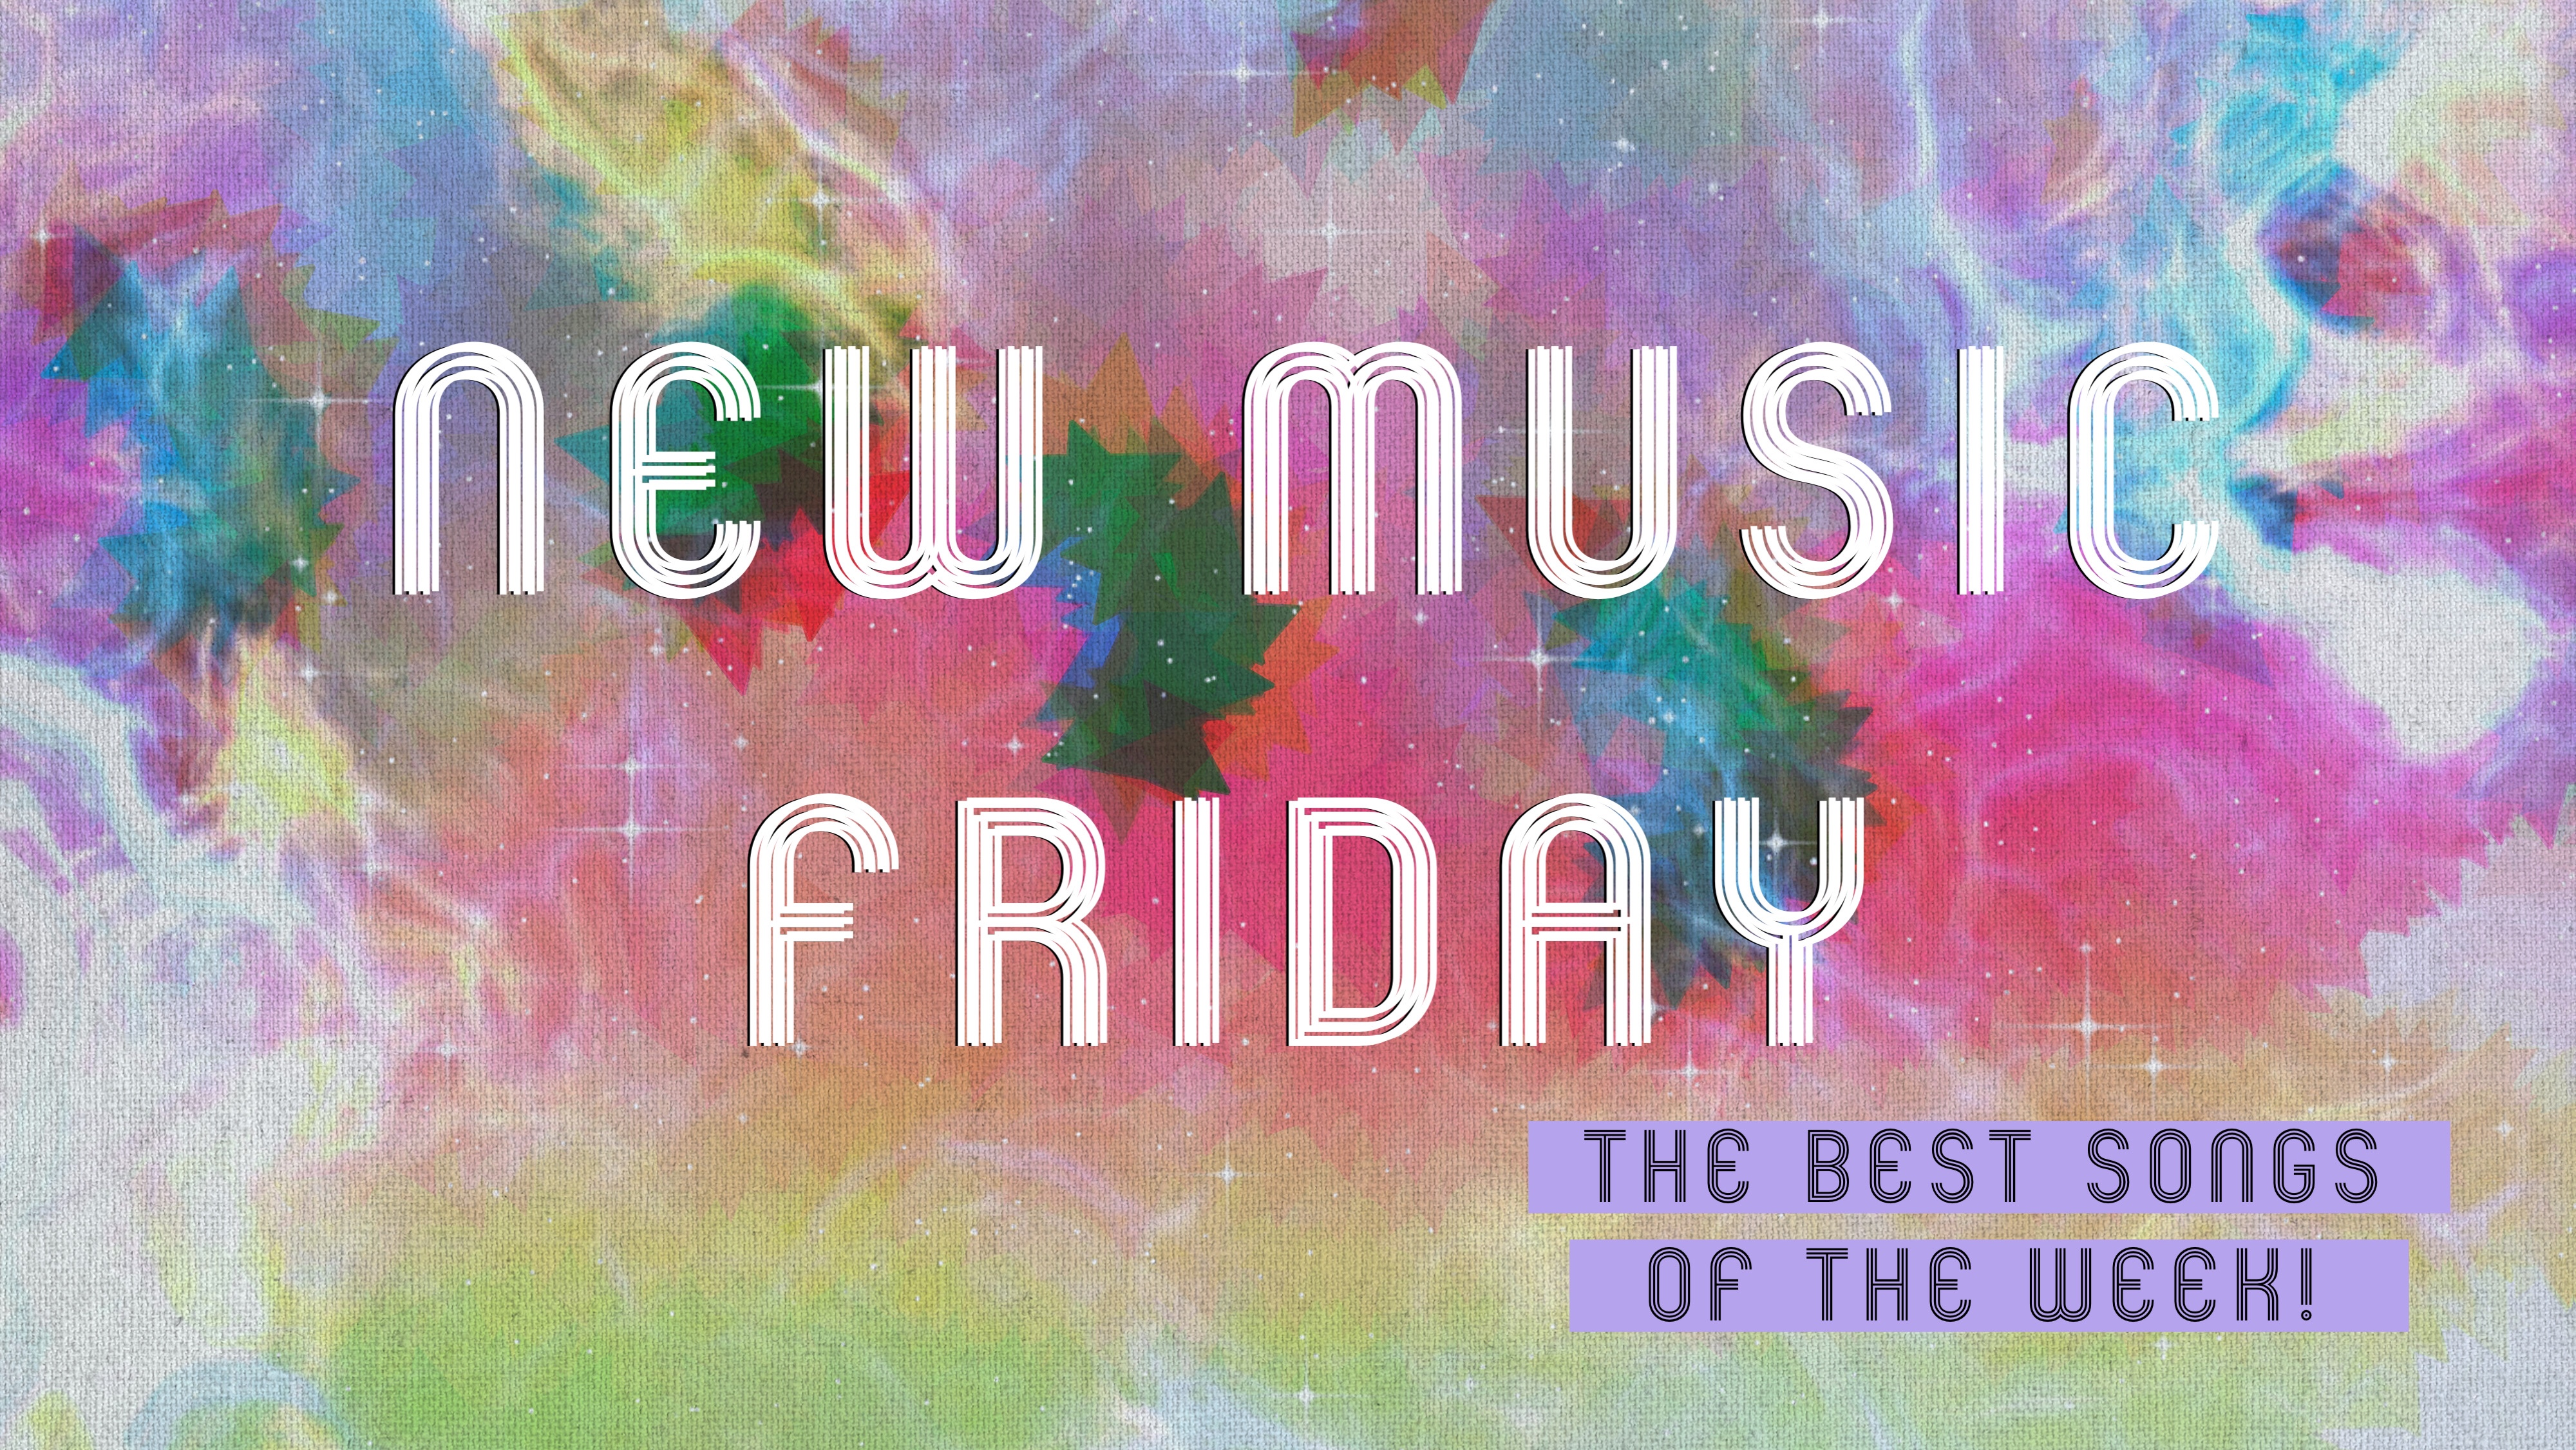 NEW MUSIC FRIDAY: THE BEST SONGS OF THE WEEK